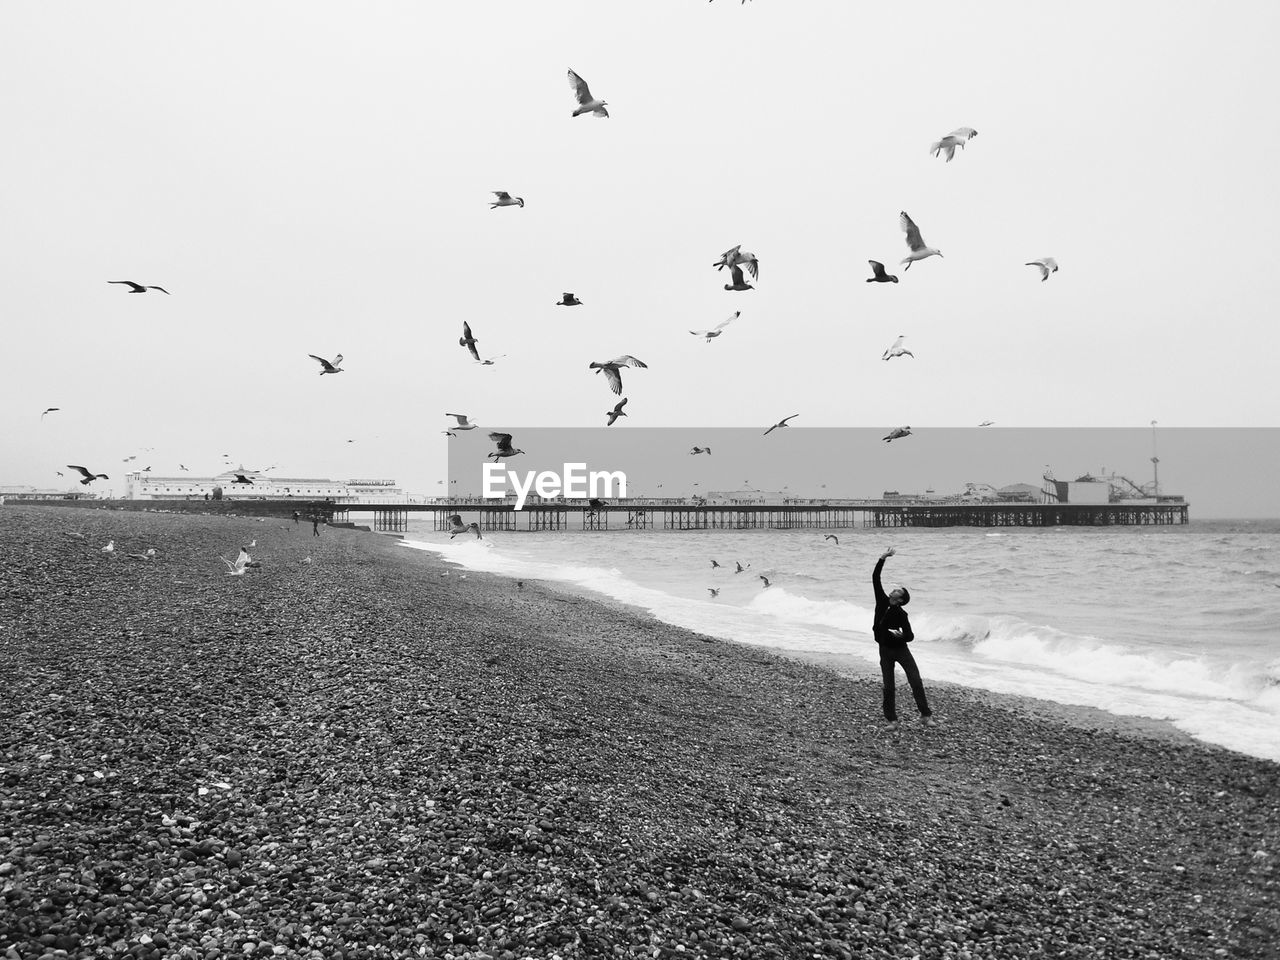 sea, bird, beach, flying, large group of animals, flock of birds, water, real people, nature, motion, full length, animals in the wild, outdoors, mid-air, seagull, one person, sky, sand, beauty in nature, scenics, horizon over water, day, clear sky, spread wings, lifestyles, men, people